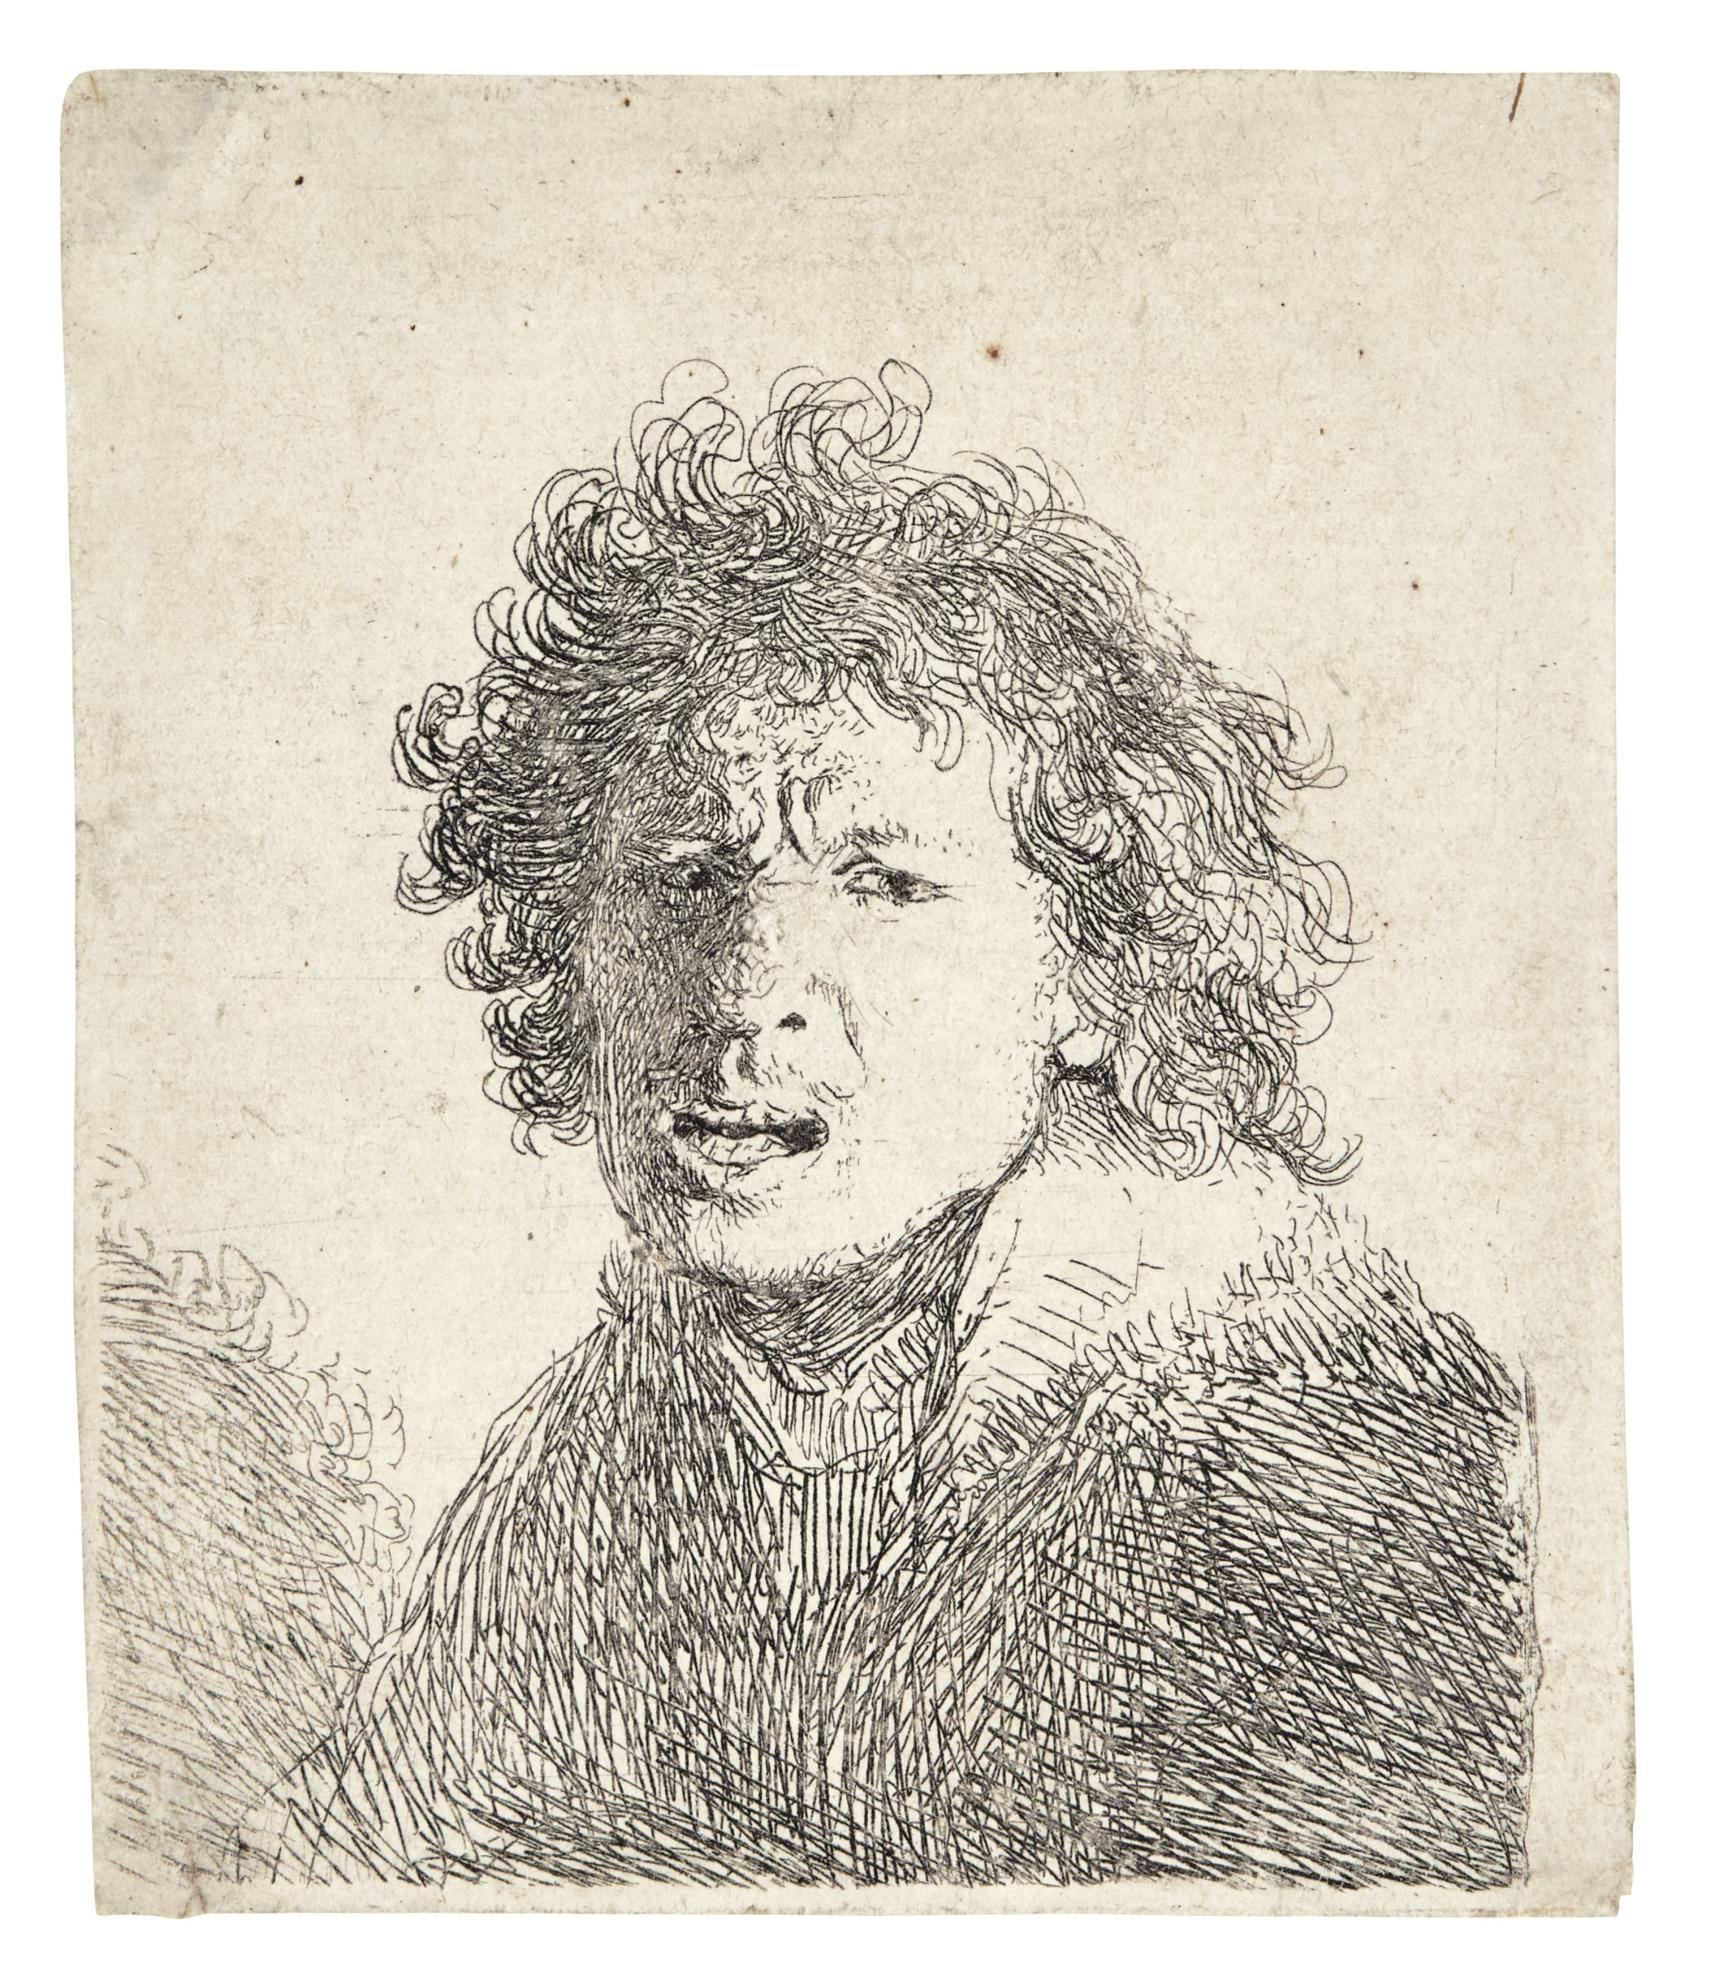 Rembrandt van Rijn-Self-Portrait Open Mouthed, As If Shouting: Bust (B., Holl. 13; New Holl. 67; H. 31)-1630